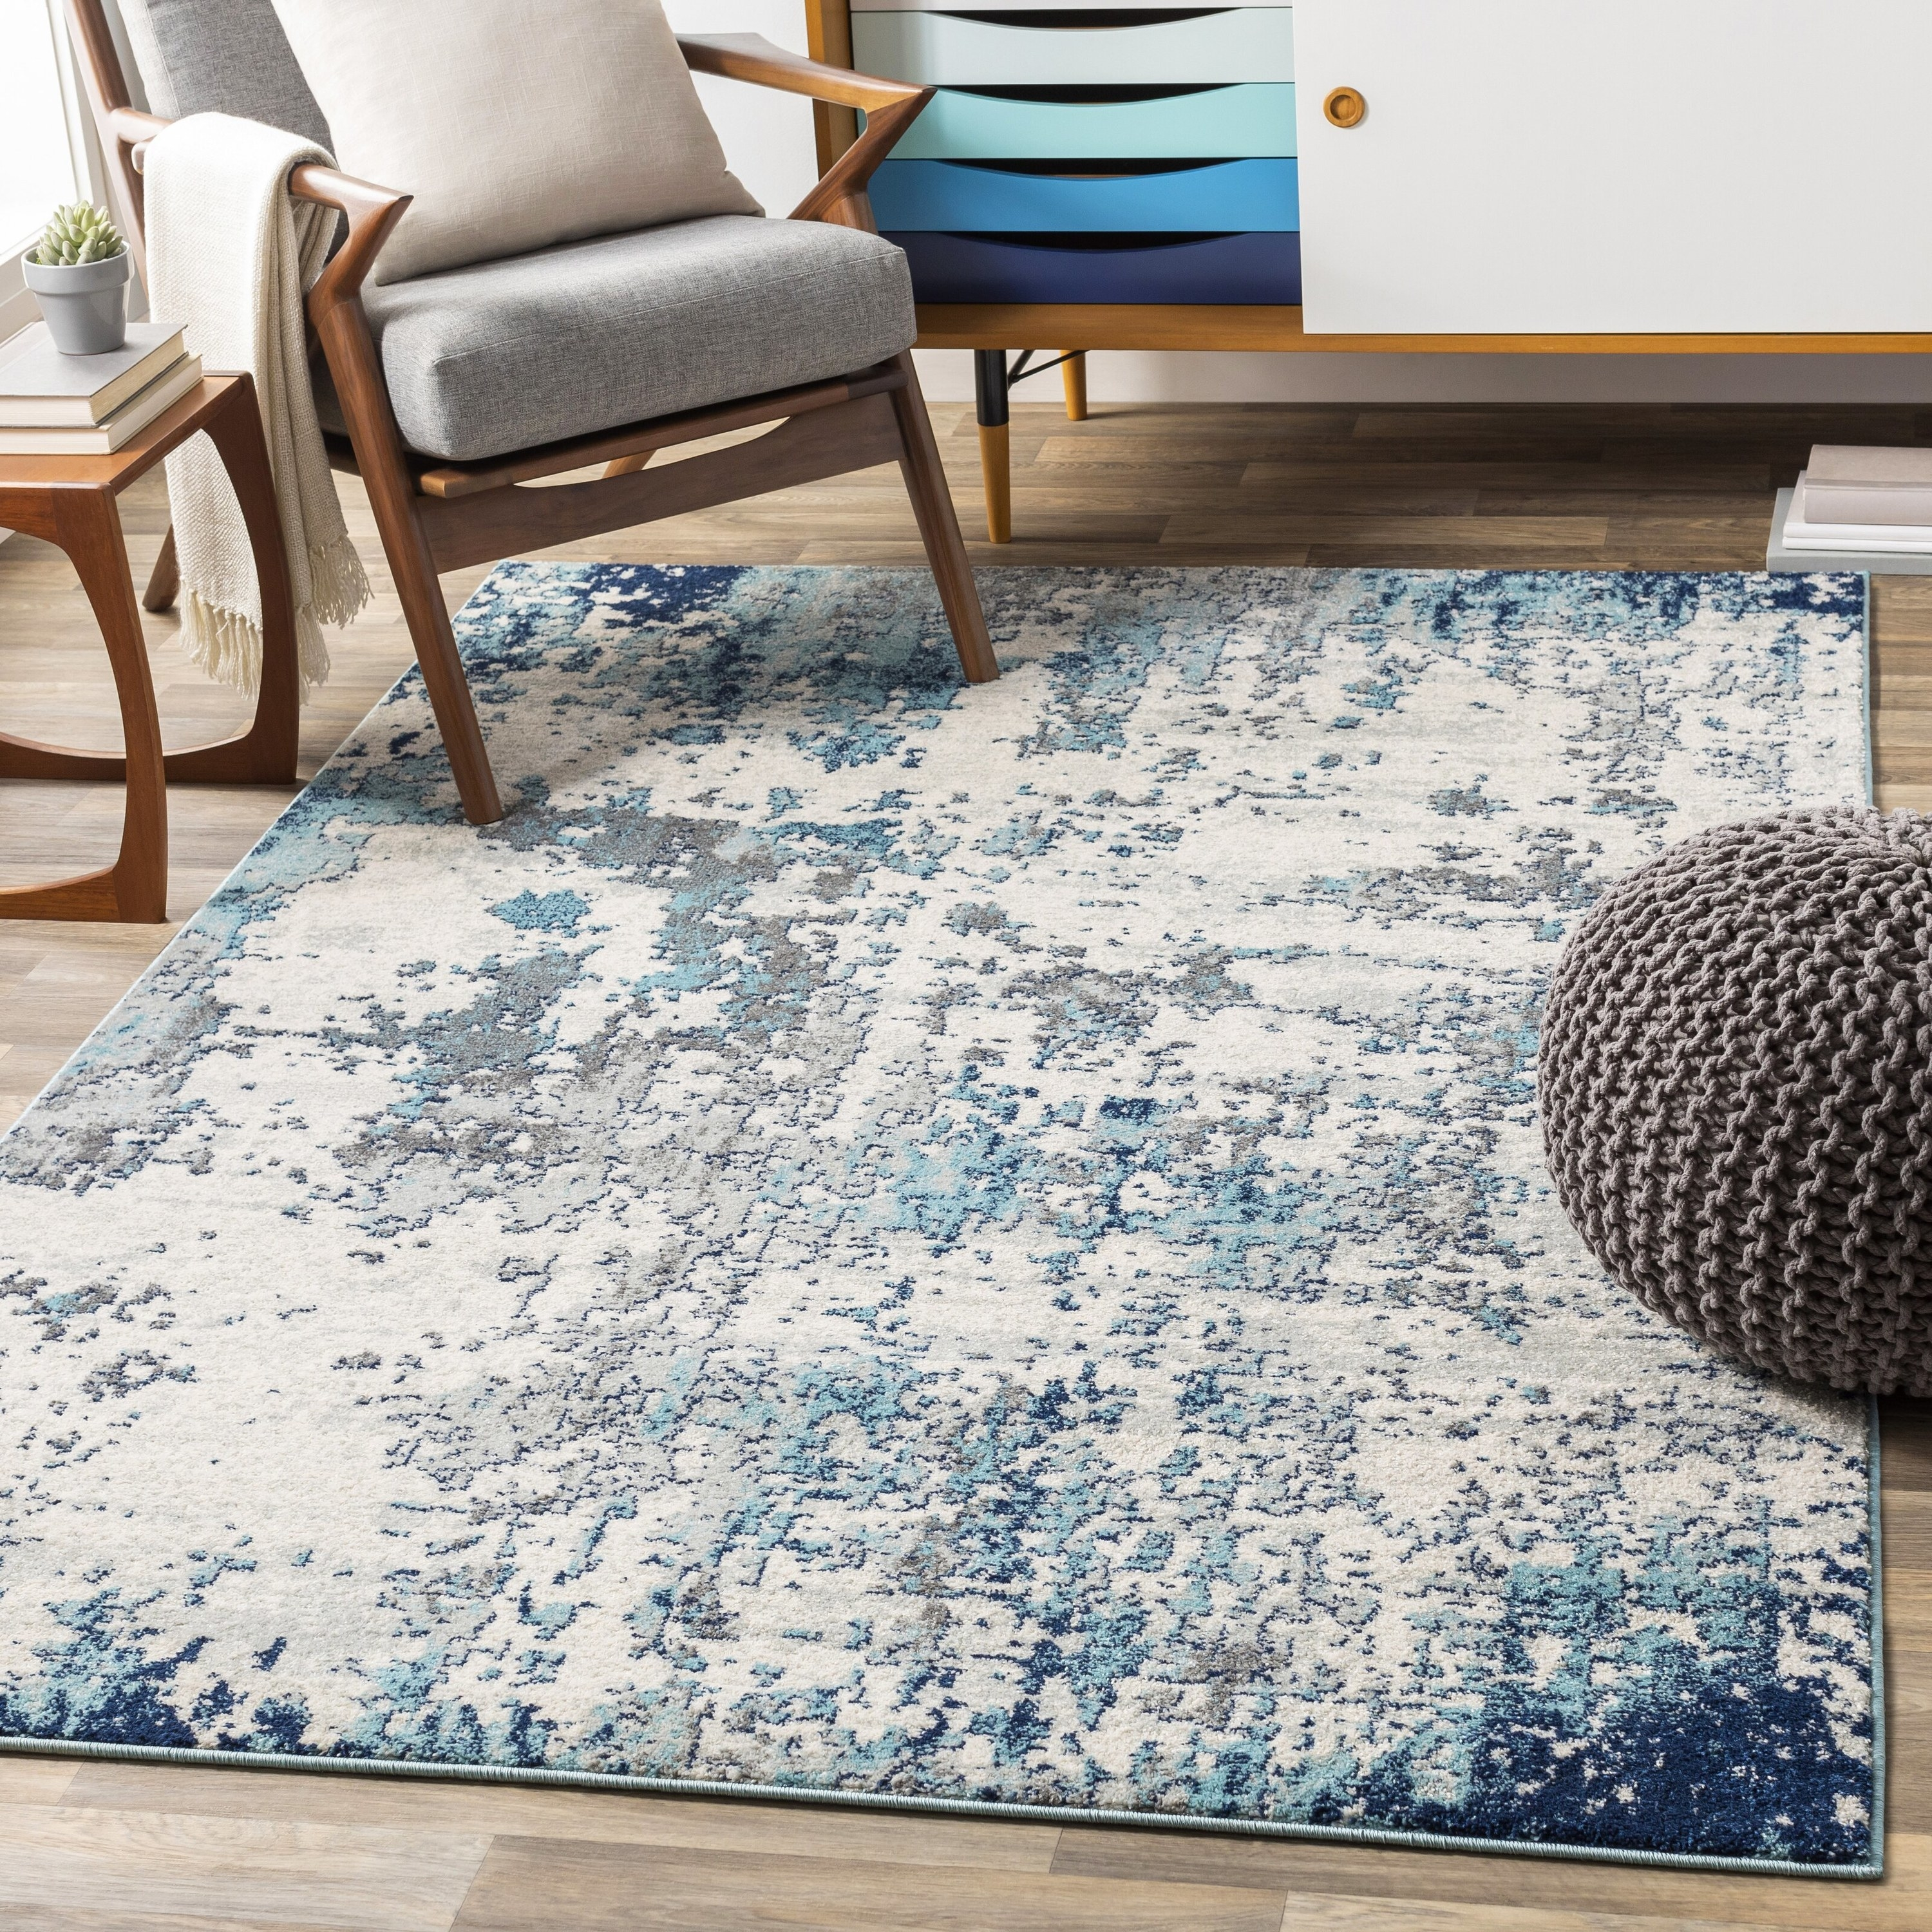 A blue and beige rug with accent chairs and an ottoman around it